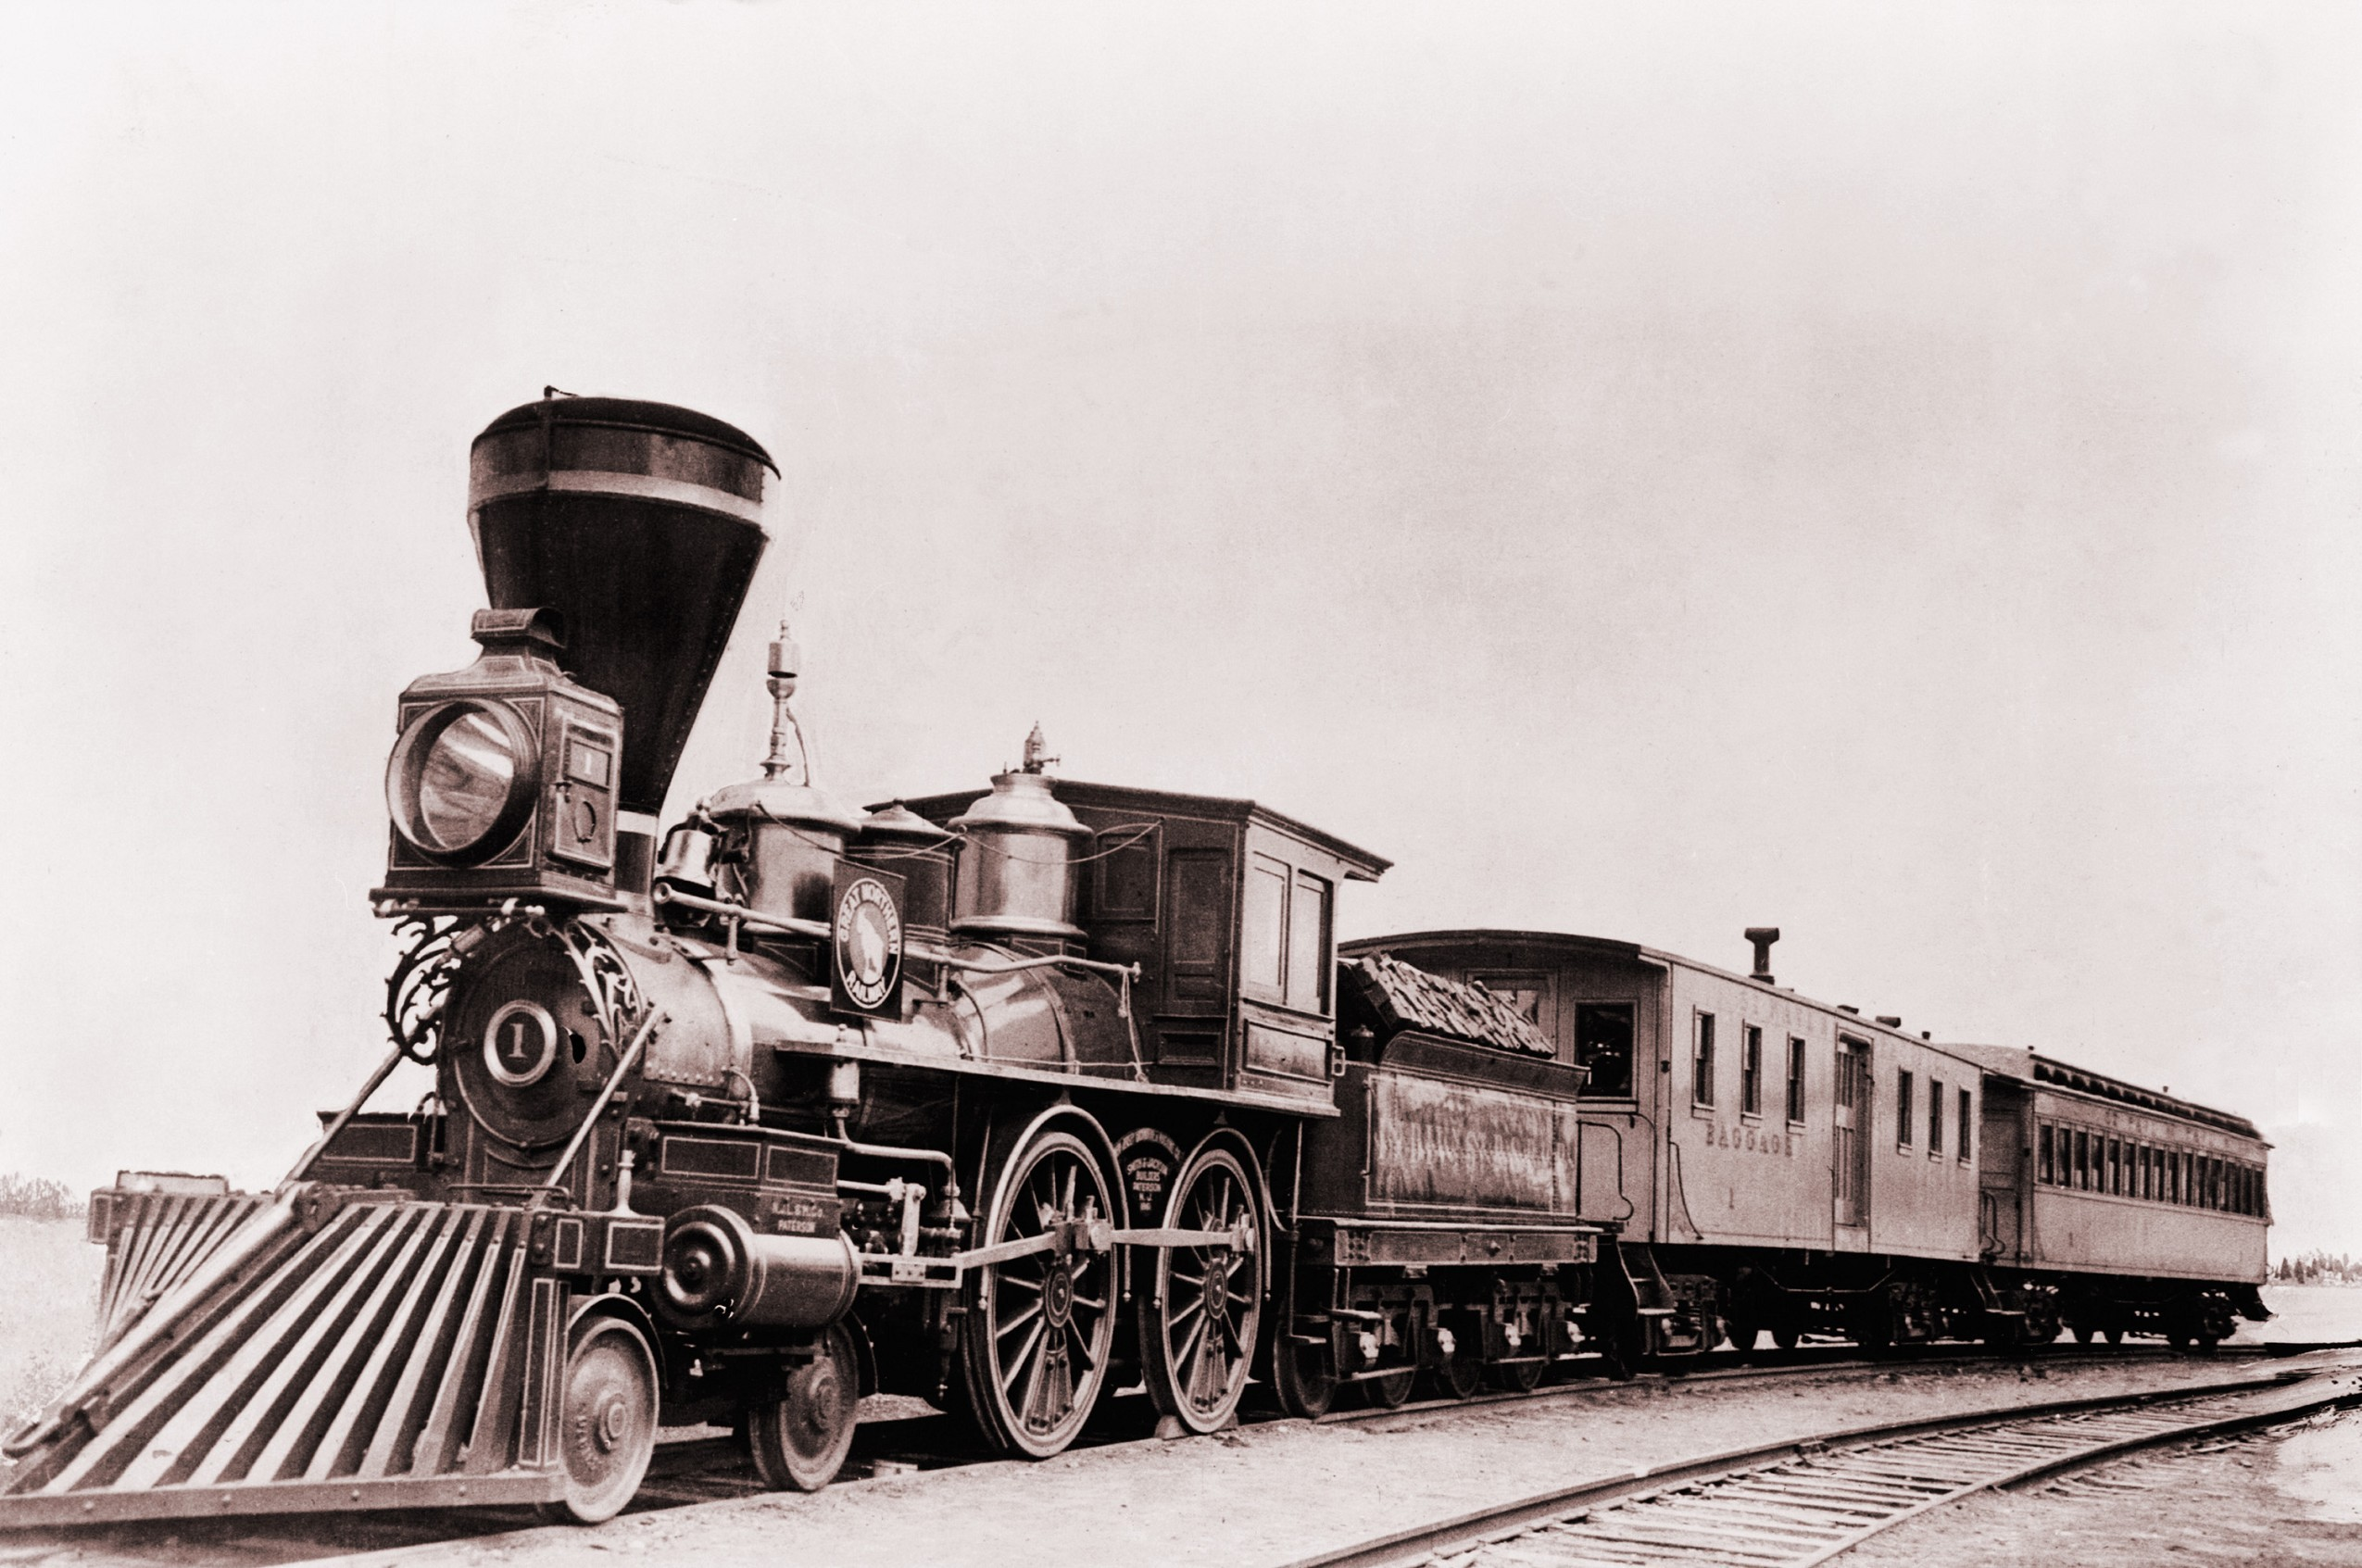 Train Wreck Management: Celebrating 180 Years of Command-and-Control Business Management